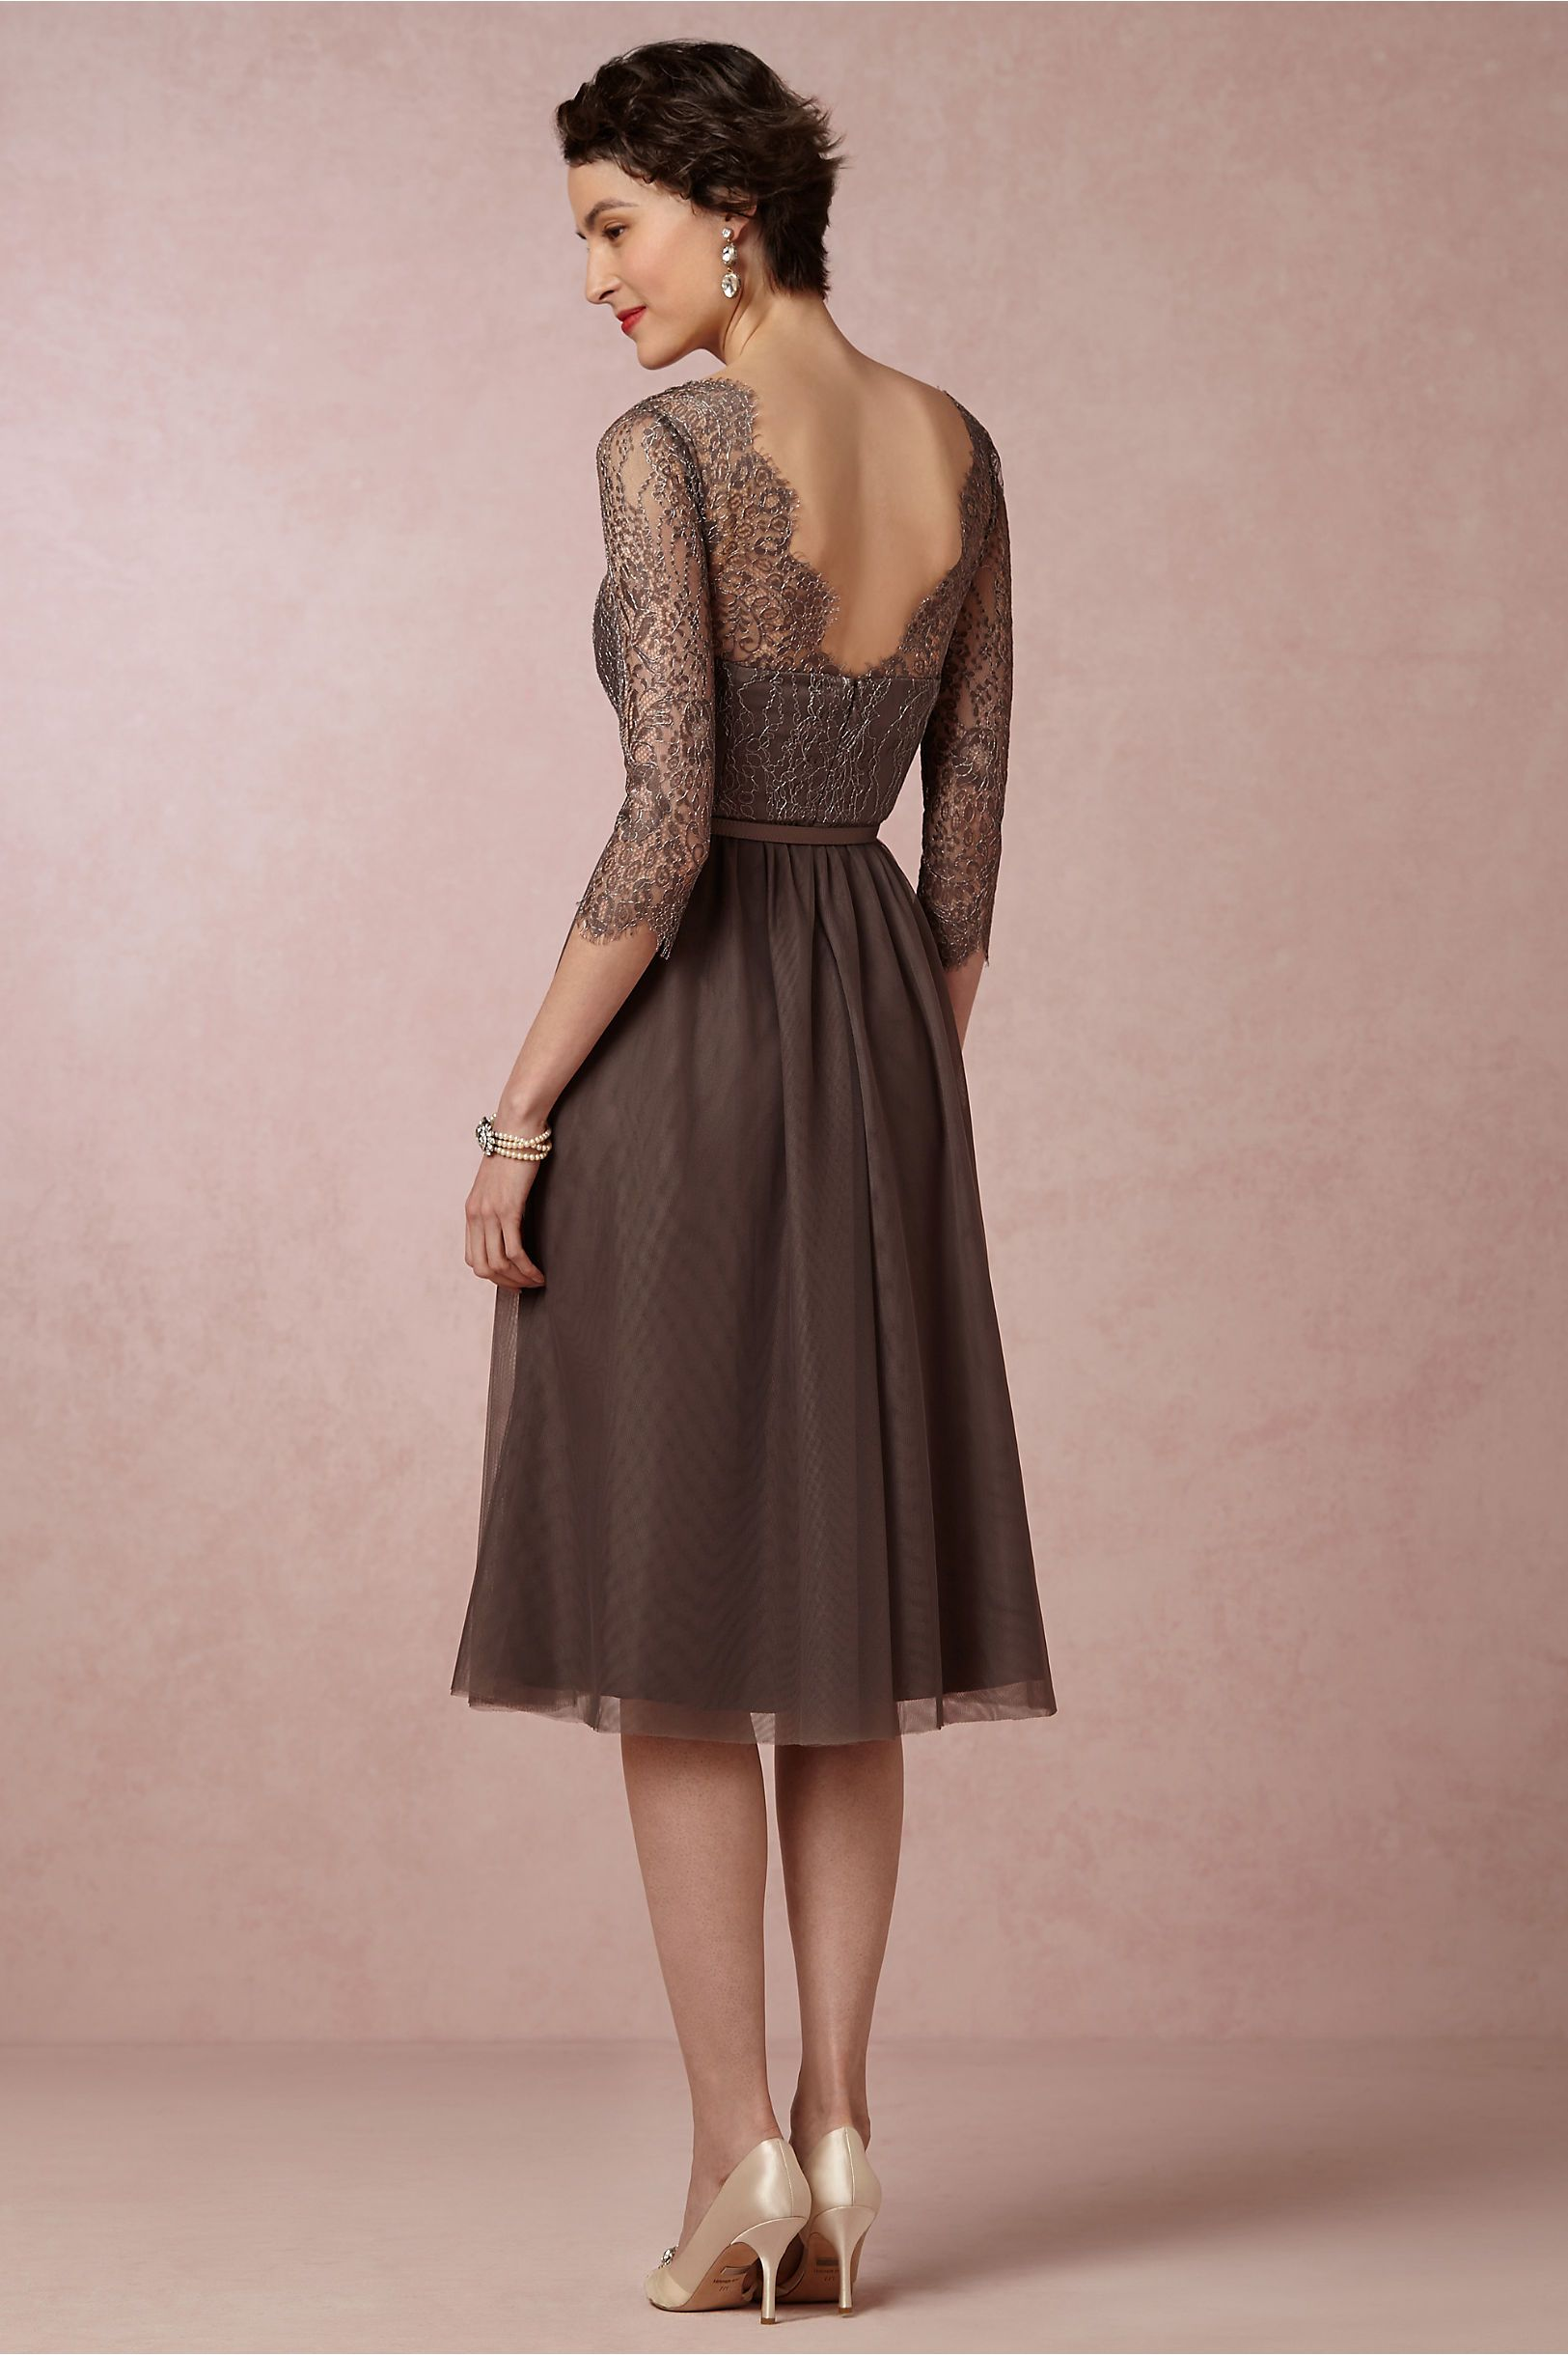 Shire Dress From Bhldn Stunning Mother Of The Bride Not Too Frumpy Methinks